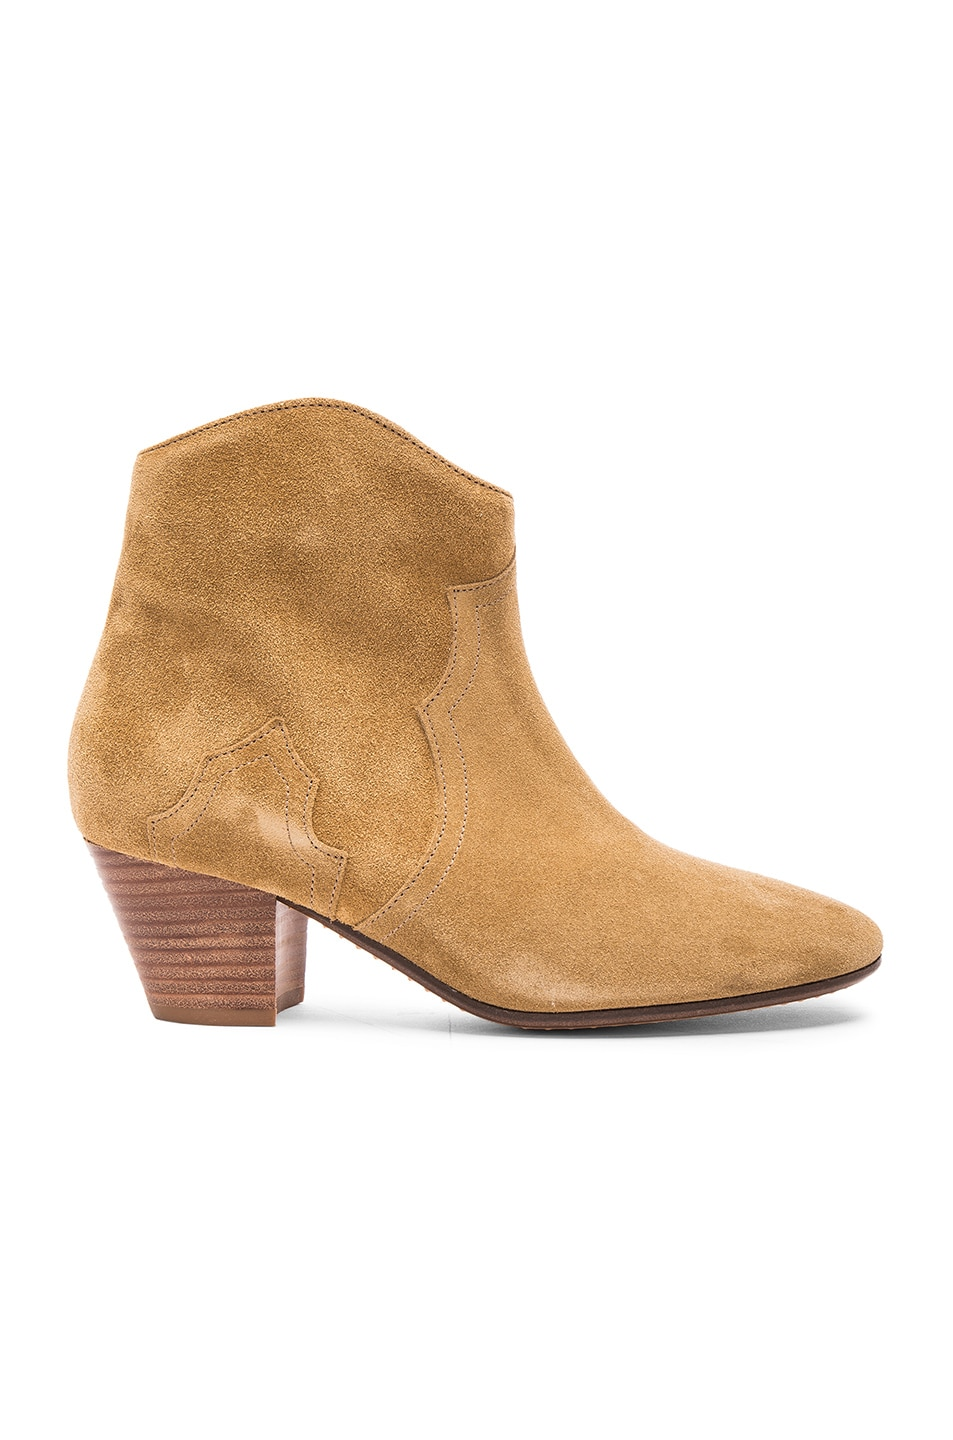 Image 1 of Isabel Marant Dicker Velvet Booties in Camel